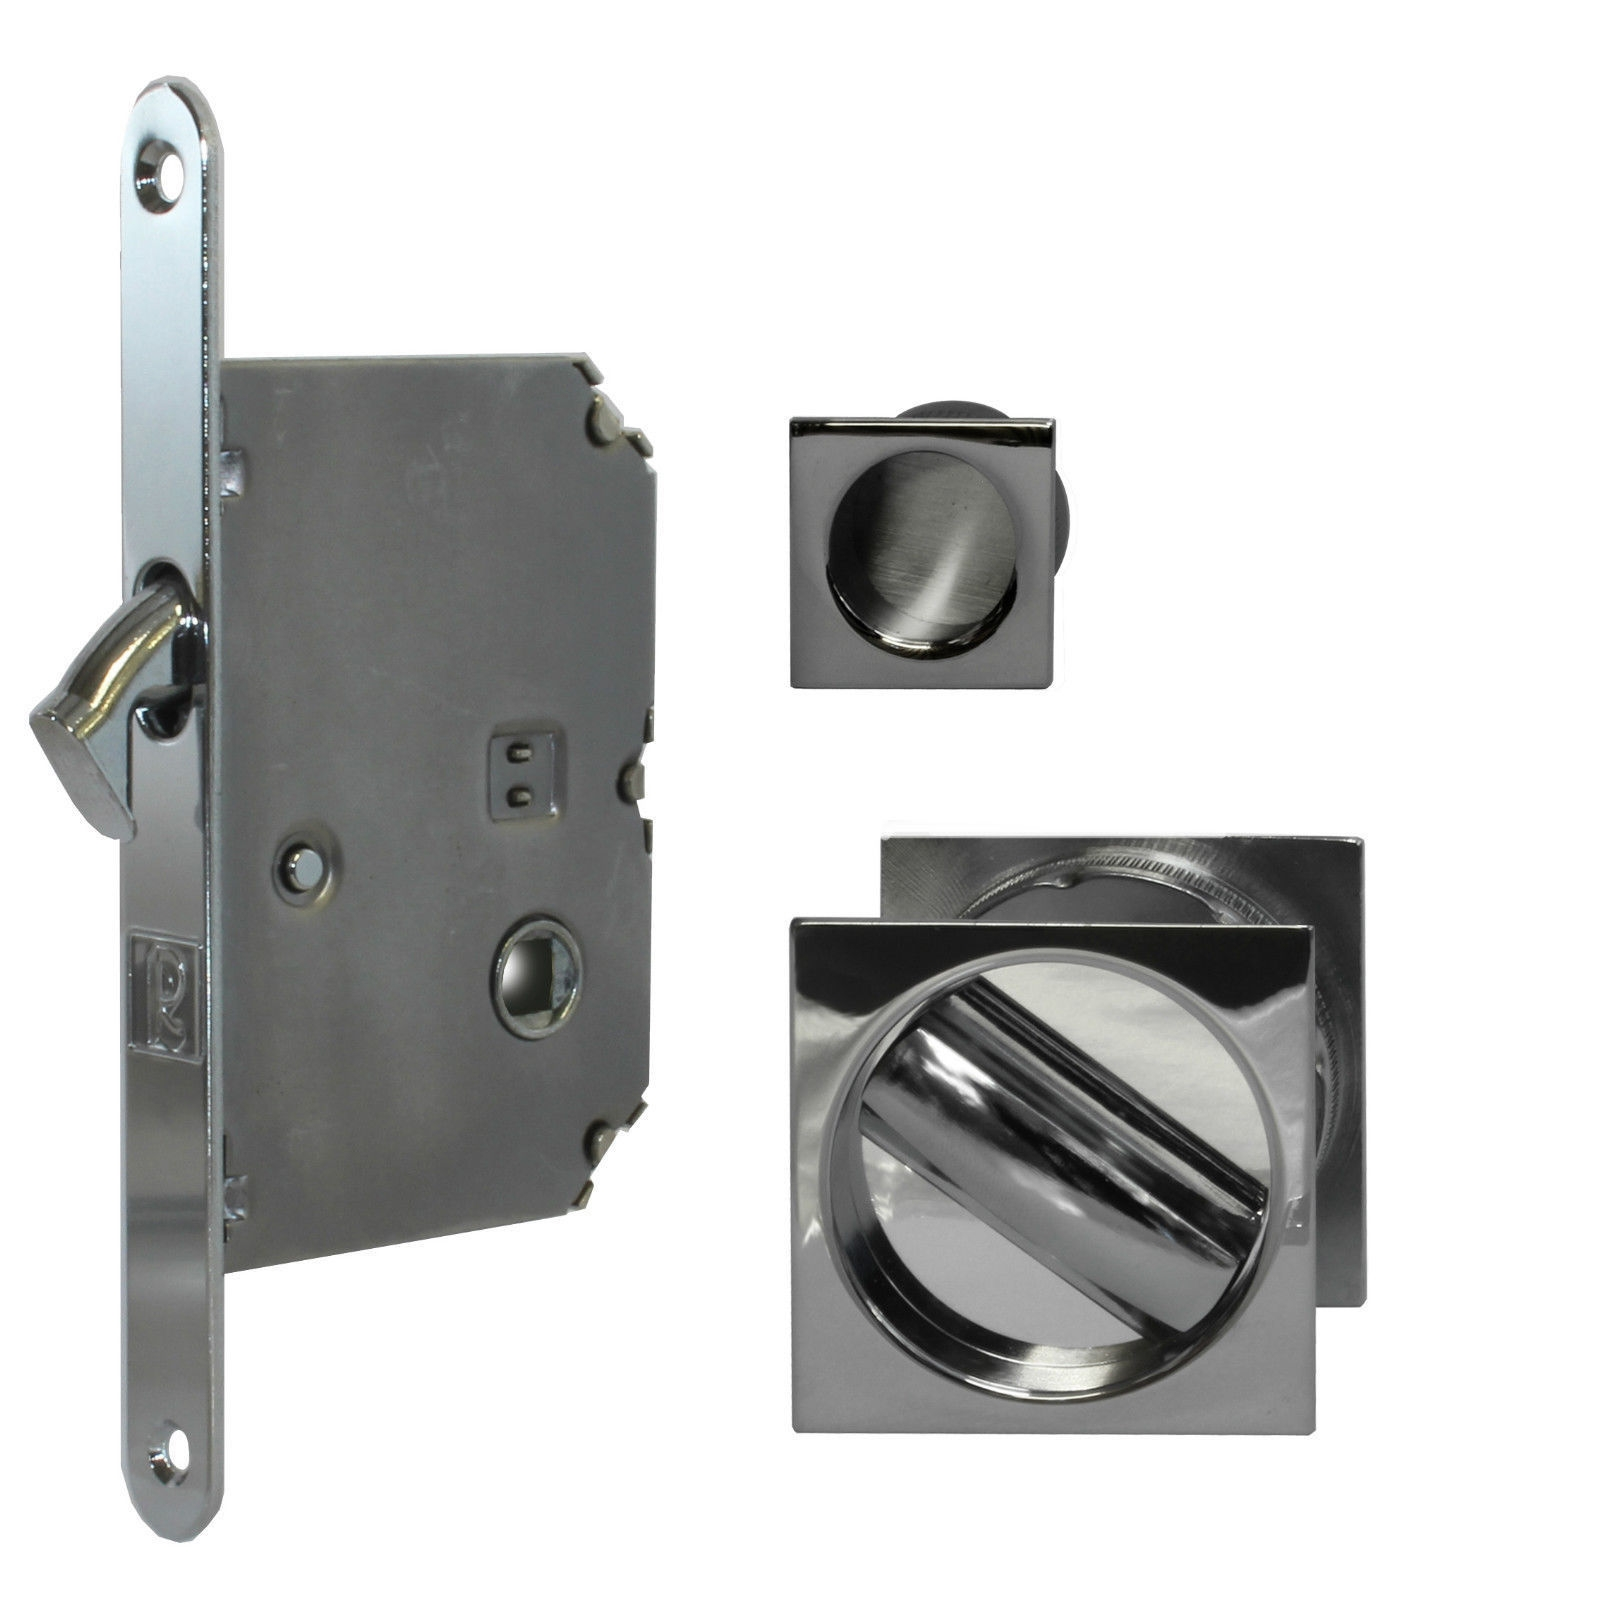 Permalink to Sliding Pocket Door Bathroom Lock